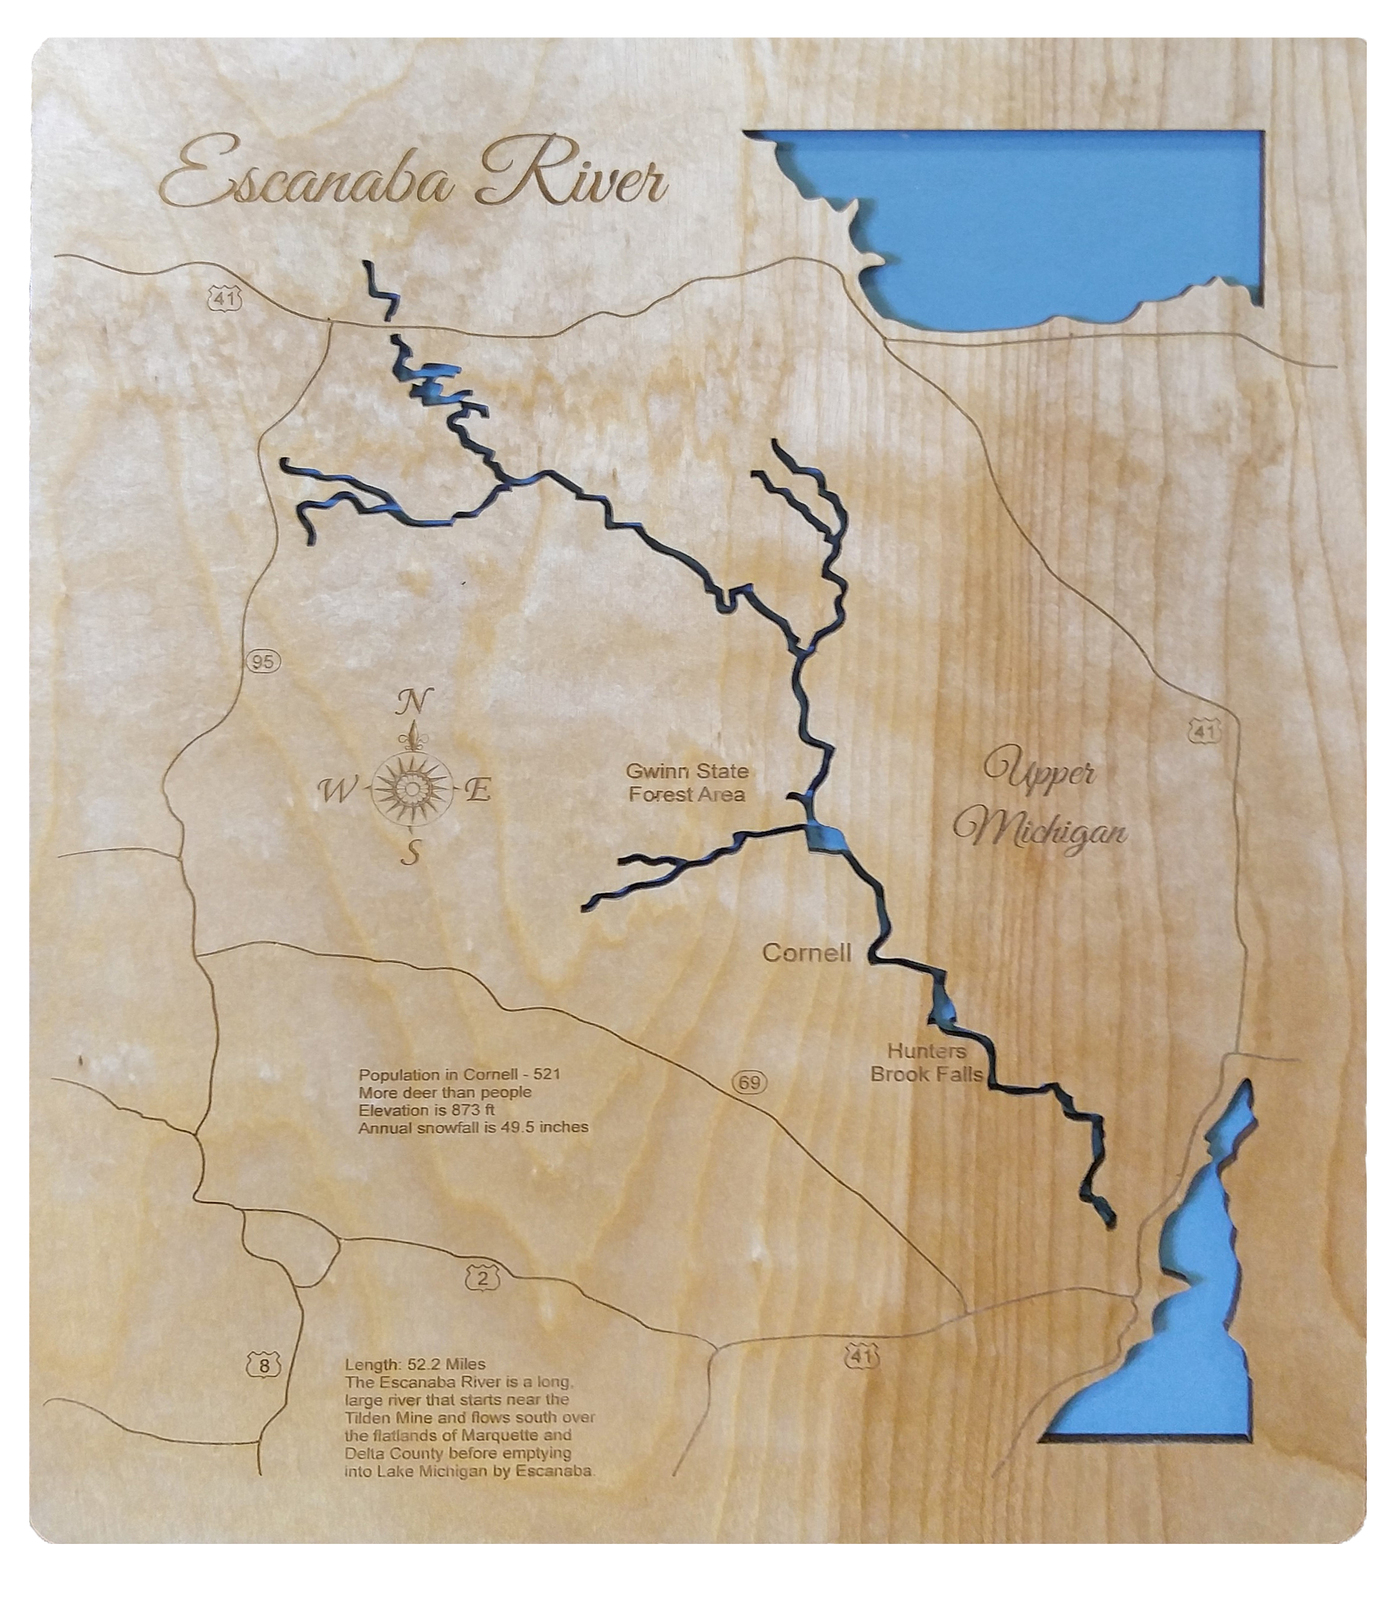 Escanaba River, Michigan - Wood Laser Cut Map - Wall Hanging